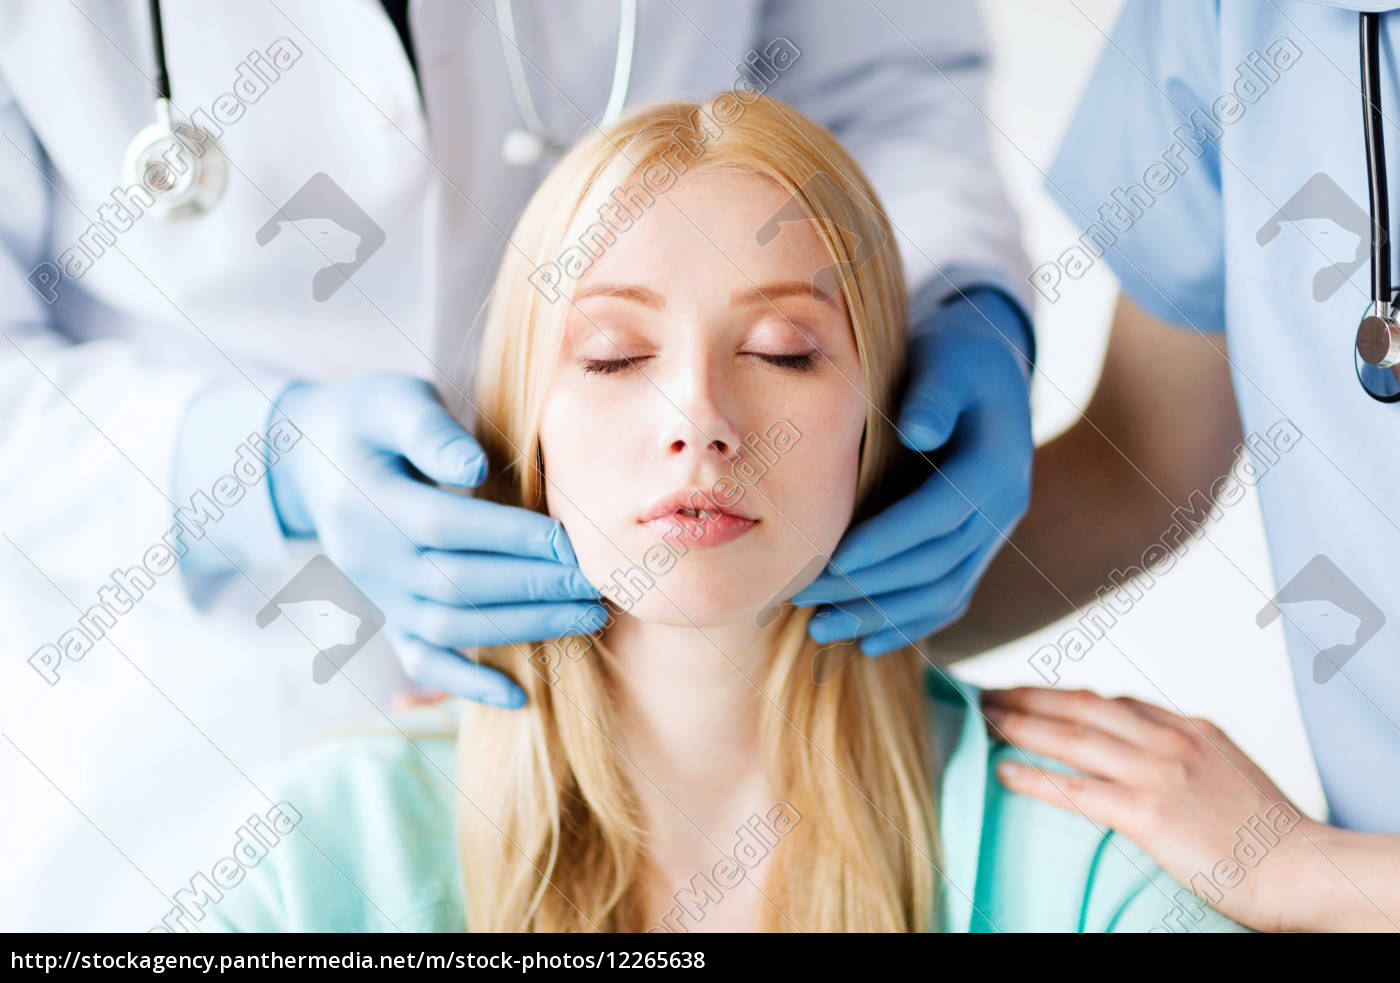 Royalty free image 12265638 - plastic surgeon or doctor with patient